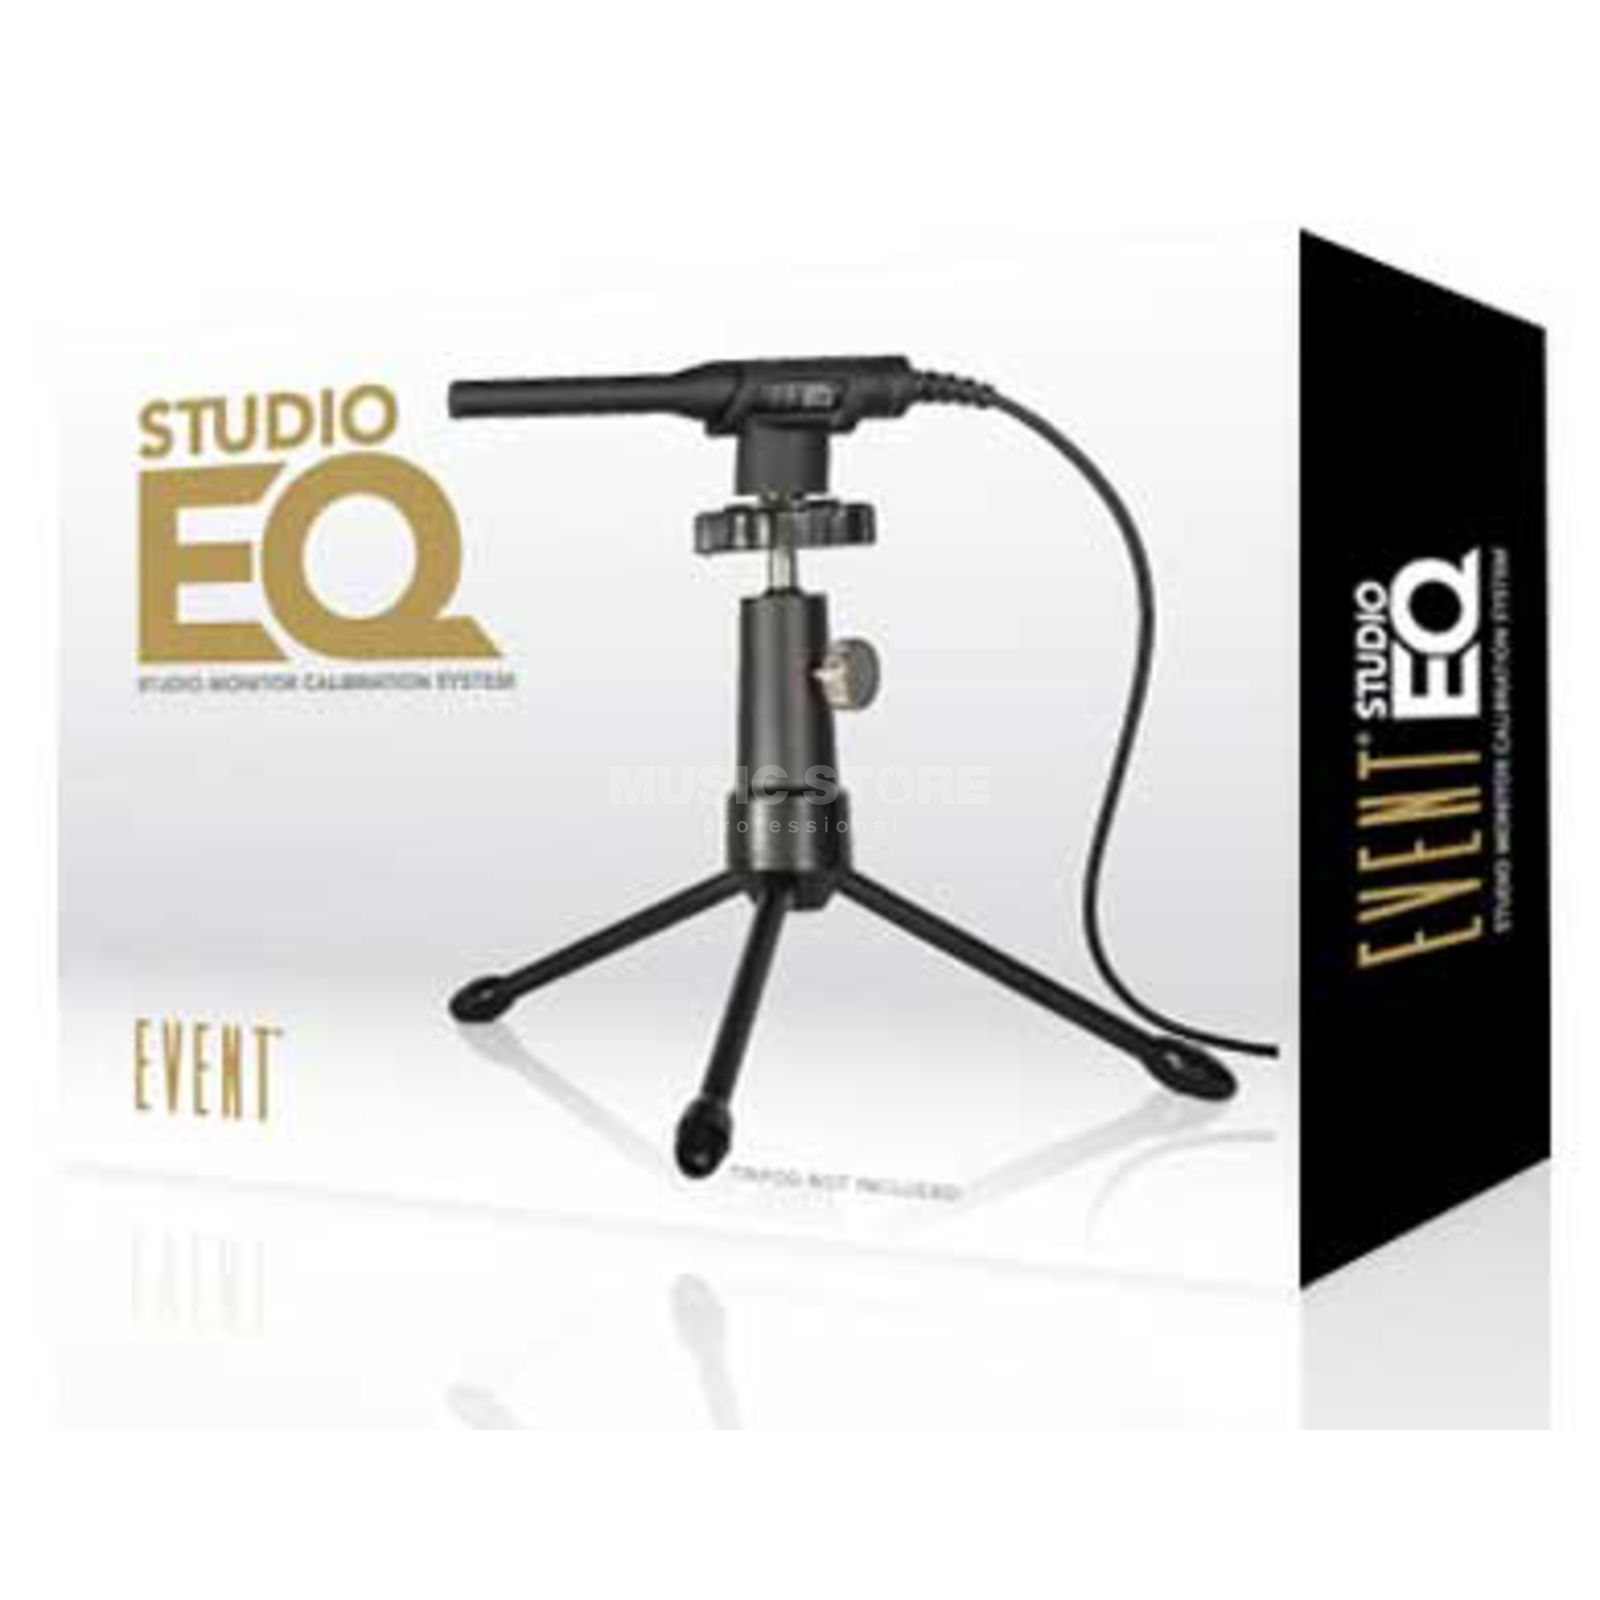 Event Electronics Studio EQ PACK Messmikro Set inkl. USB-Stick und Kabel Produktbillede